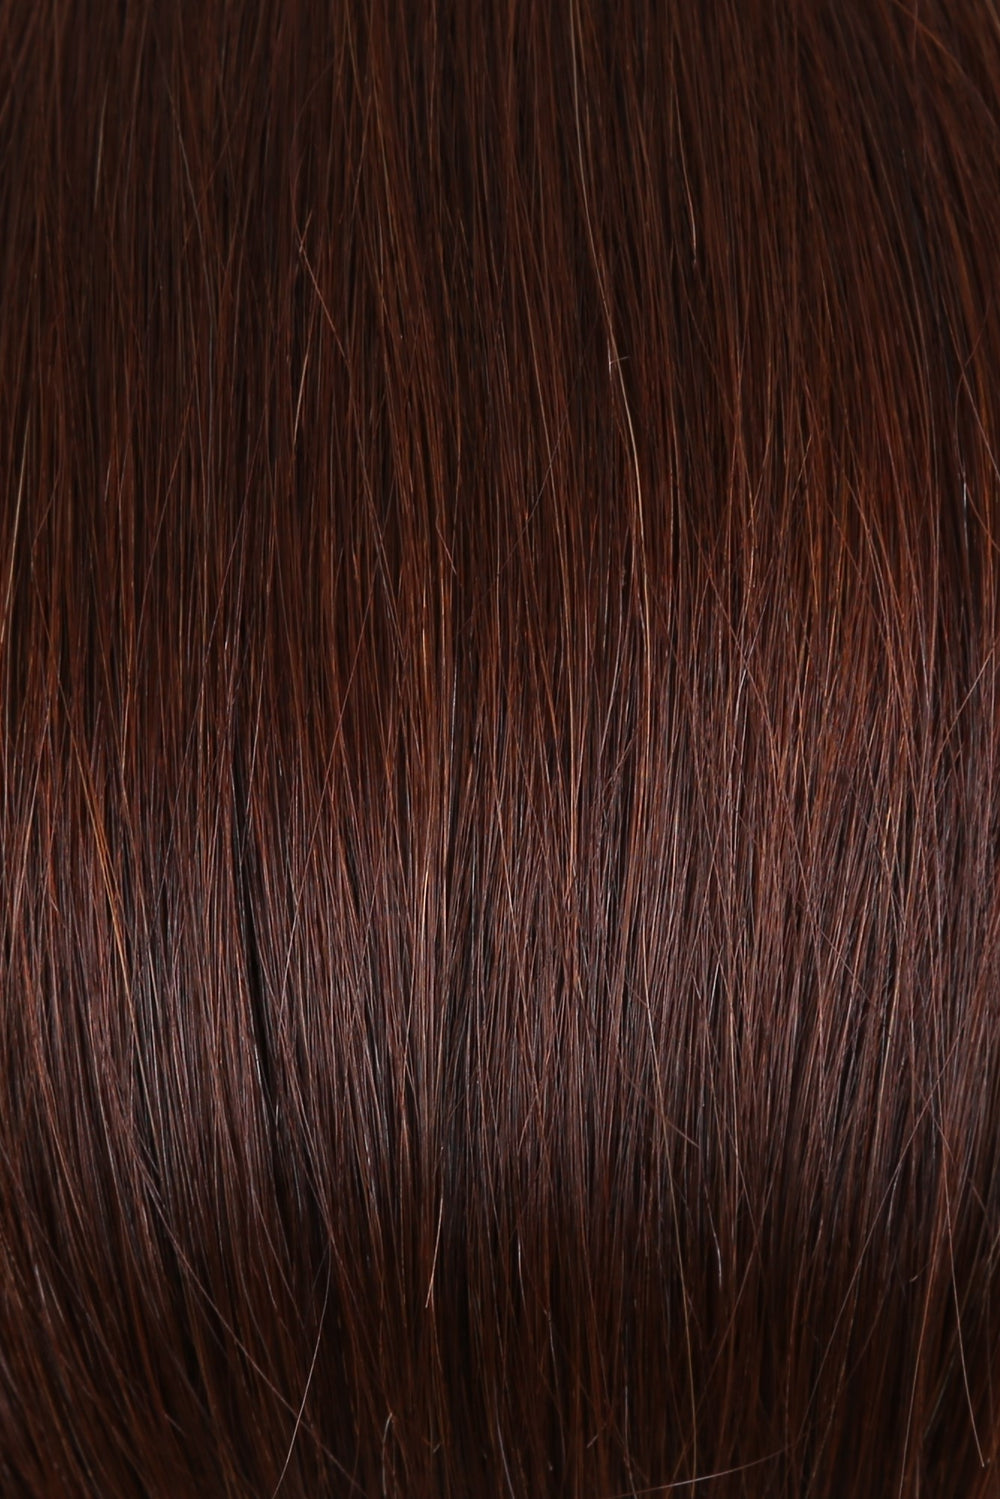 unnected nanoring® Hairextensions